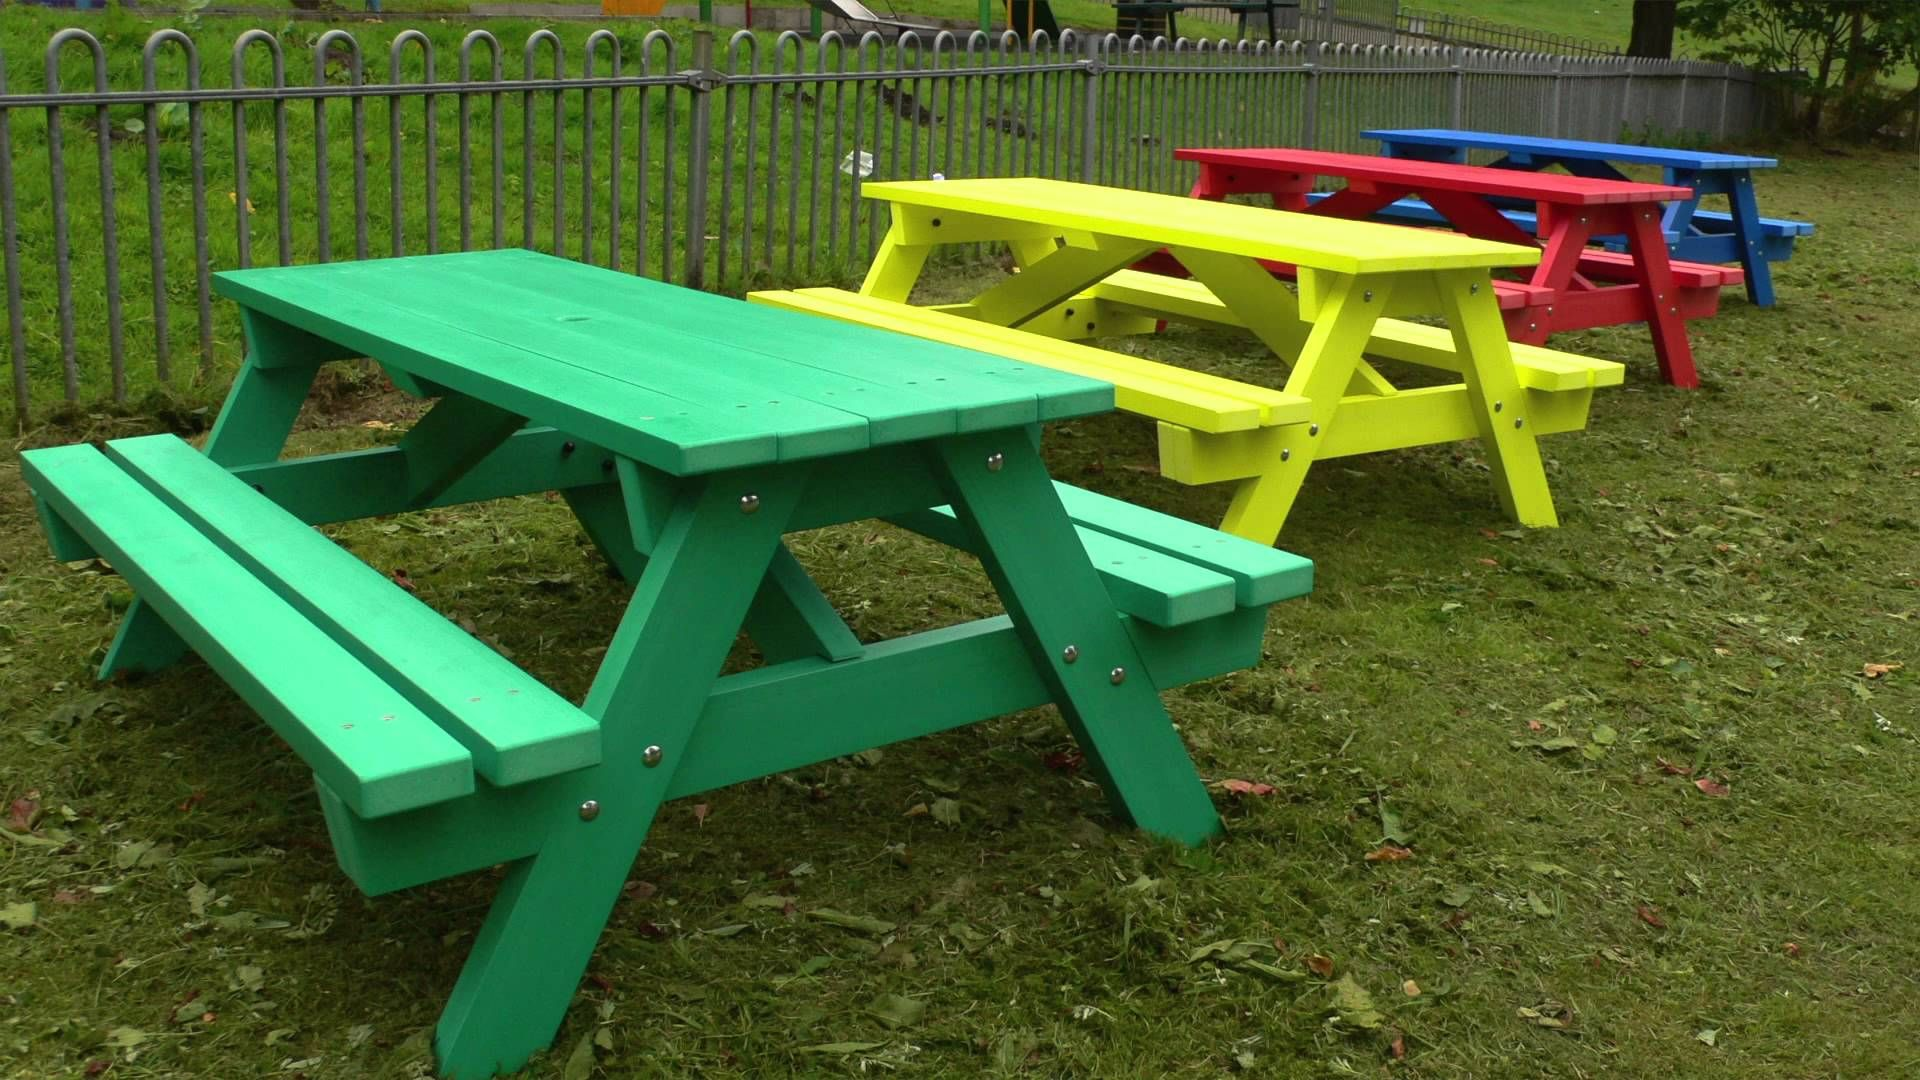 The derwent junior picnic table is ideal for schools and nurseries maintenance free never rots looks good throughout its long life up to 80 reduced whole